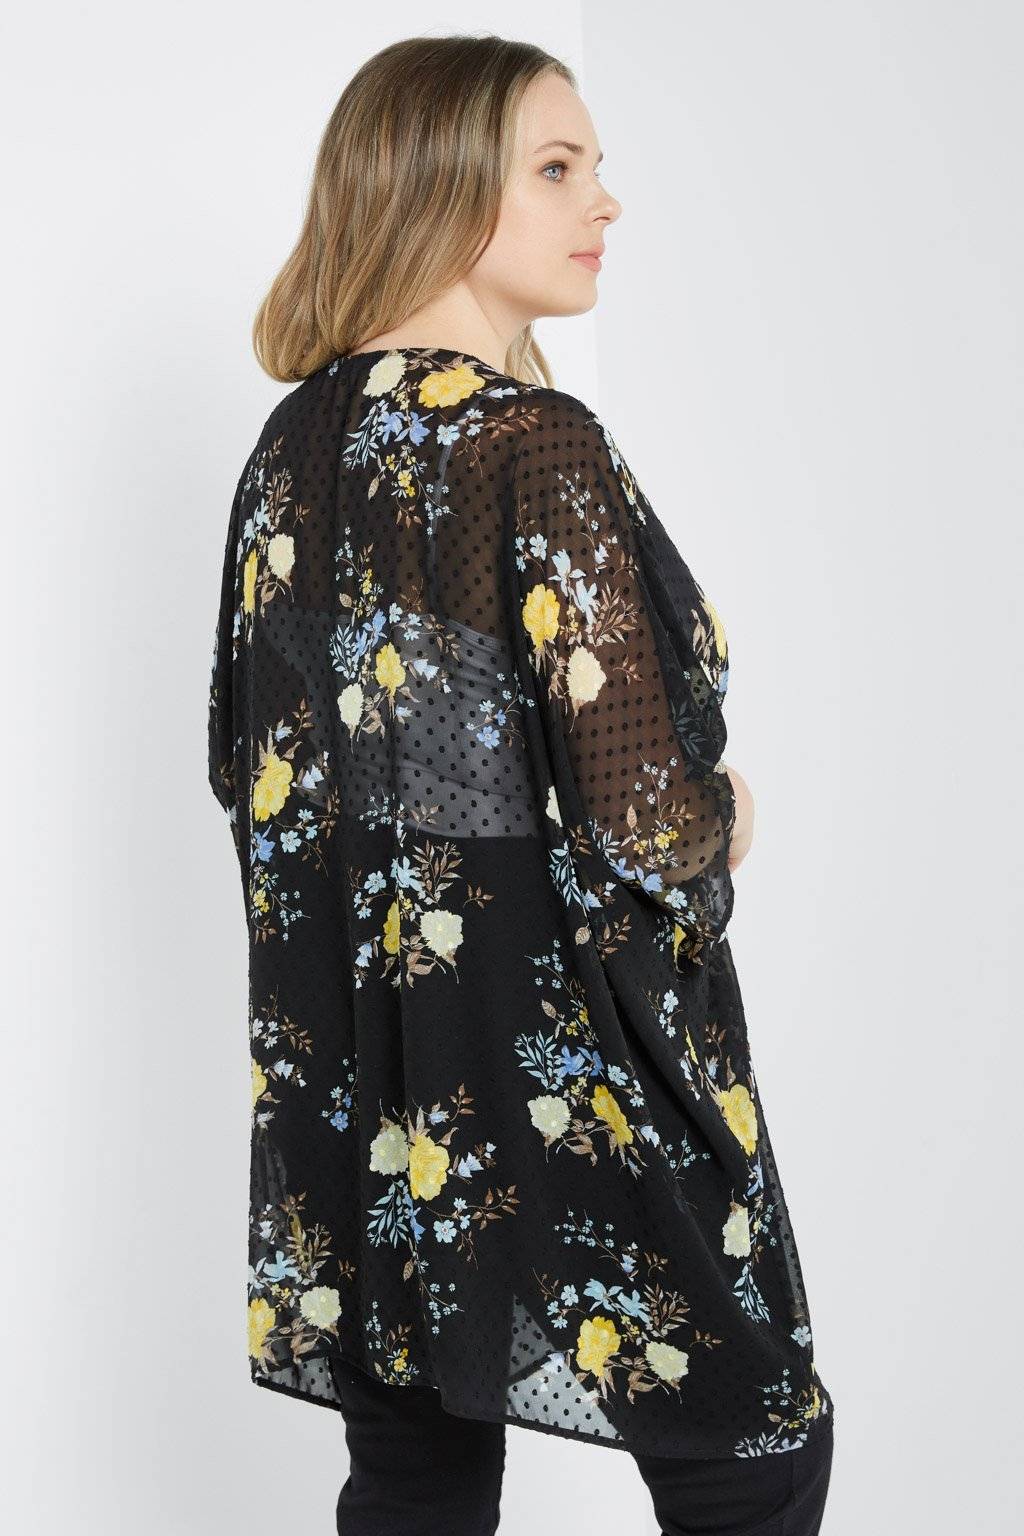 Poshsquare Plus Floral Open-Front Sheer Kimono Plus Size